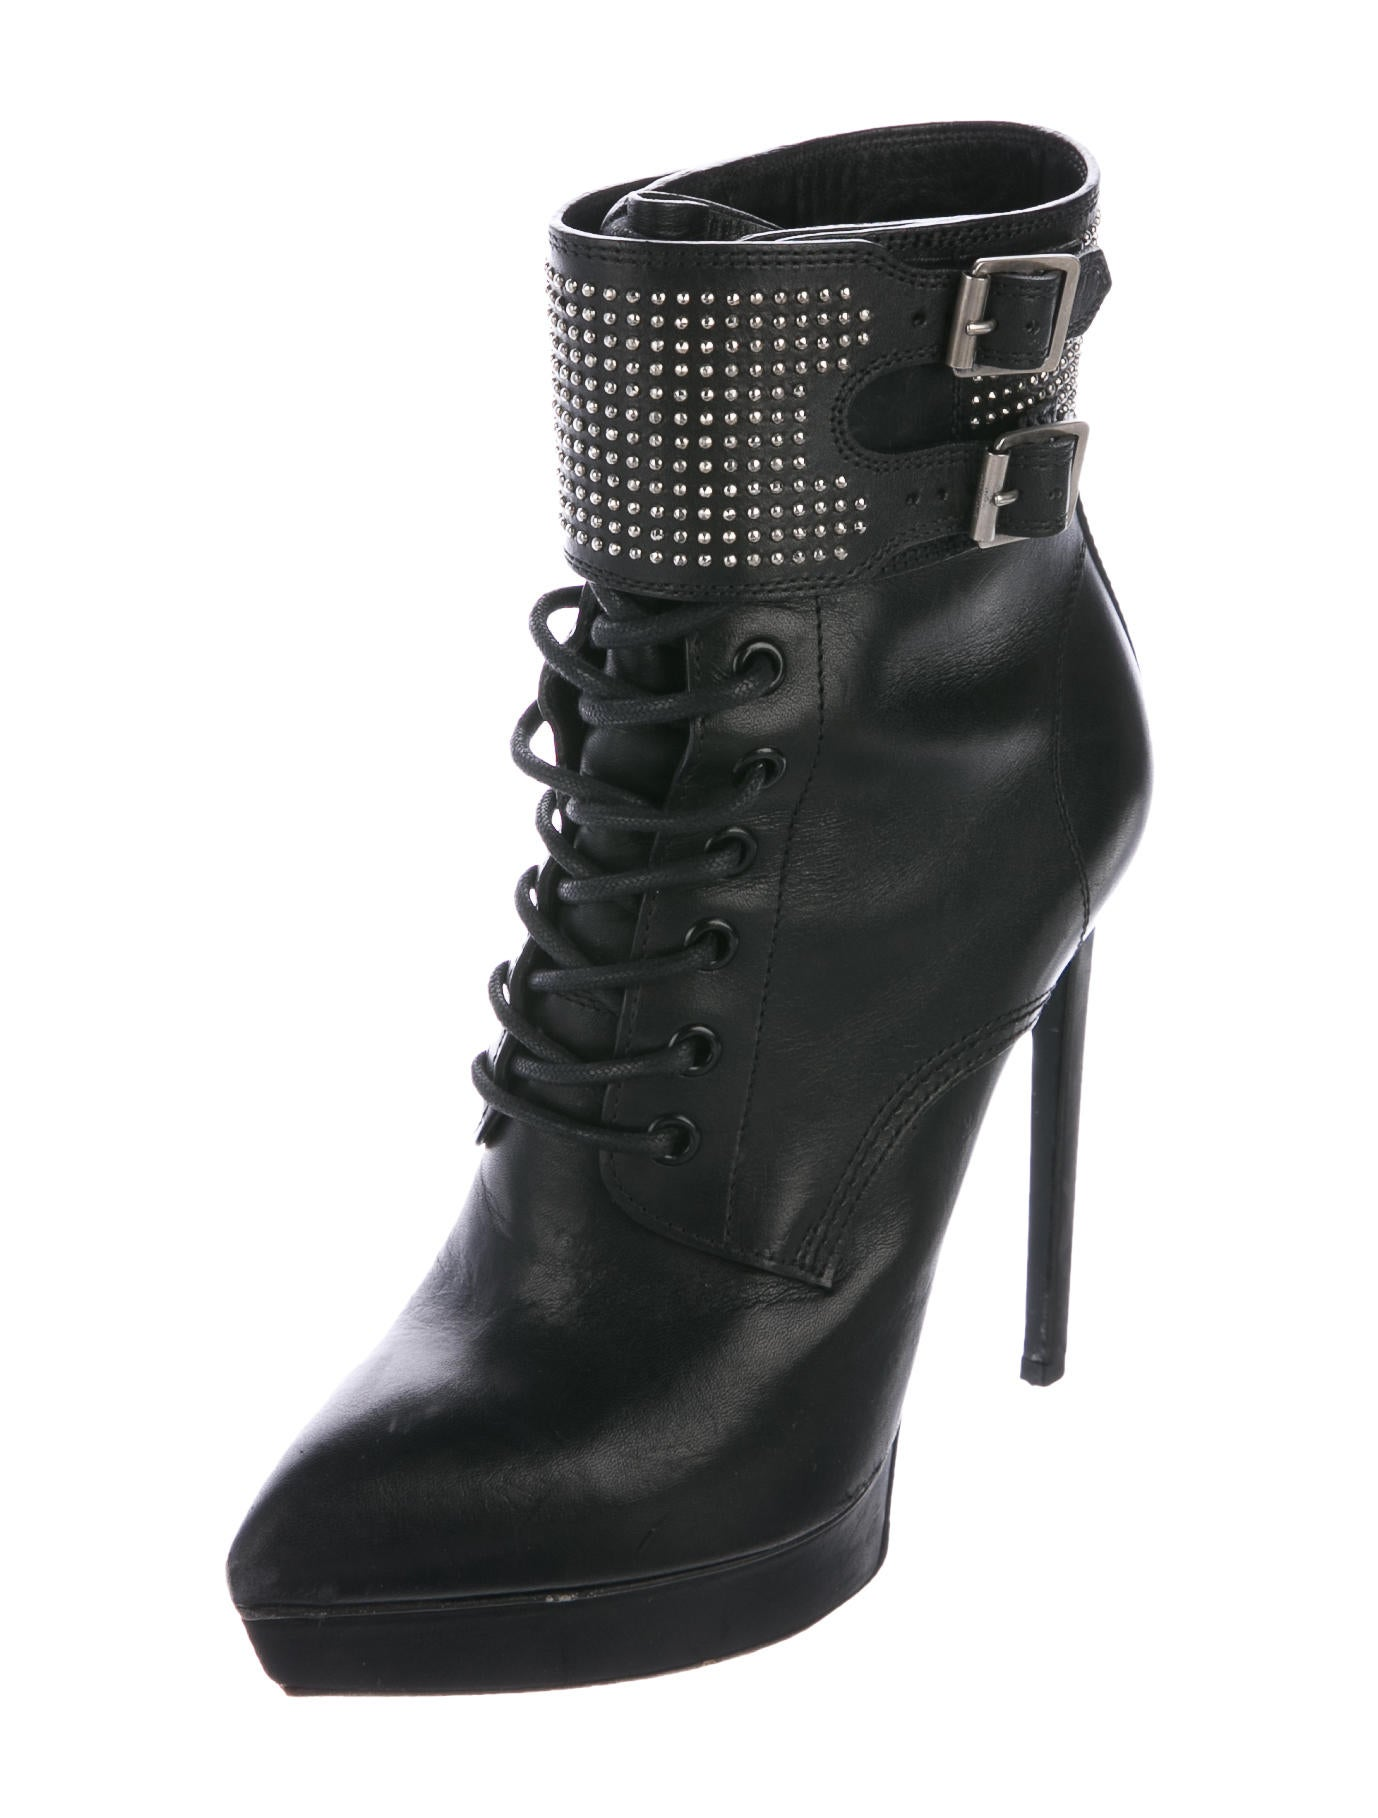 Discover platform shoes with ASOS. Shop from a range of platform shoes, platform boots and other platform shoe styles.